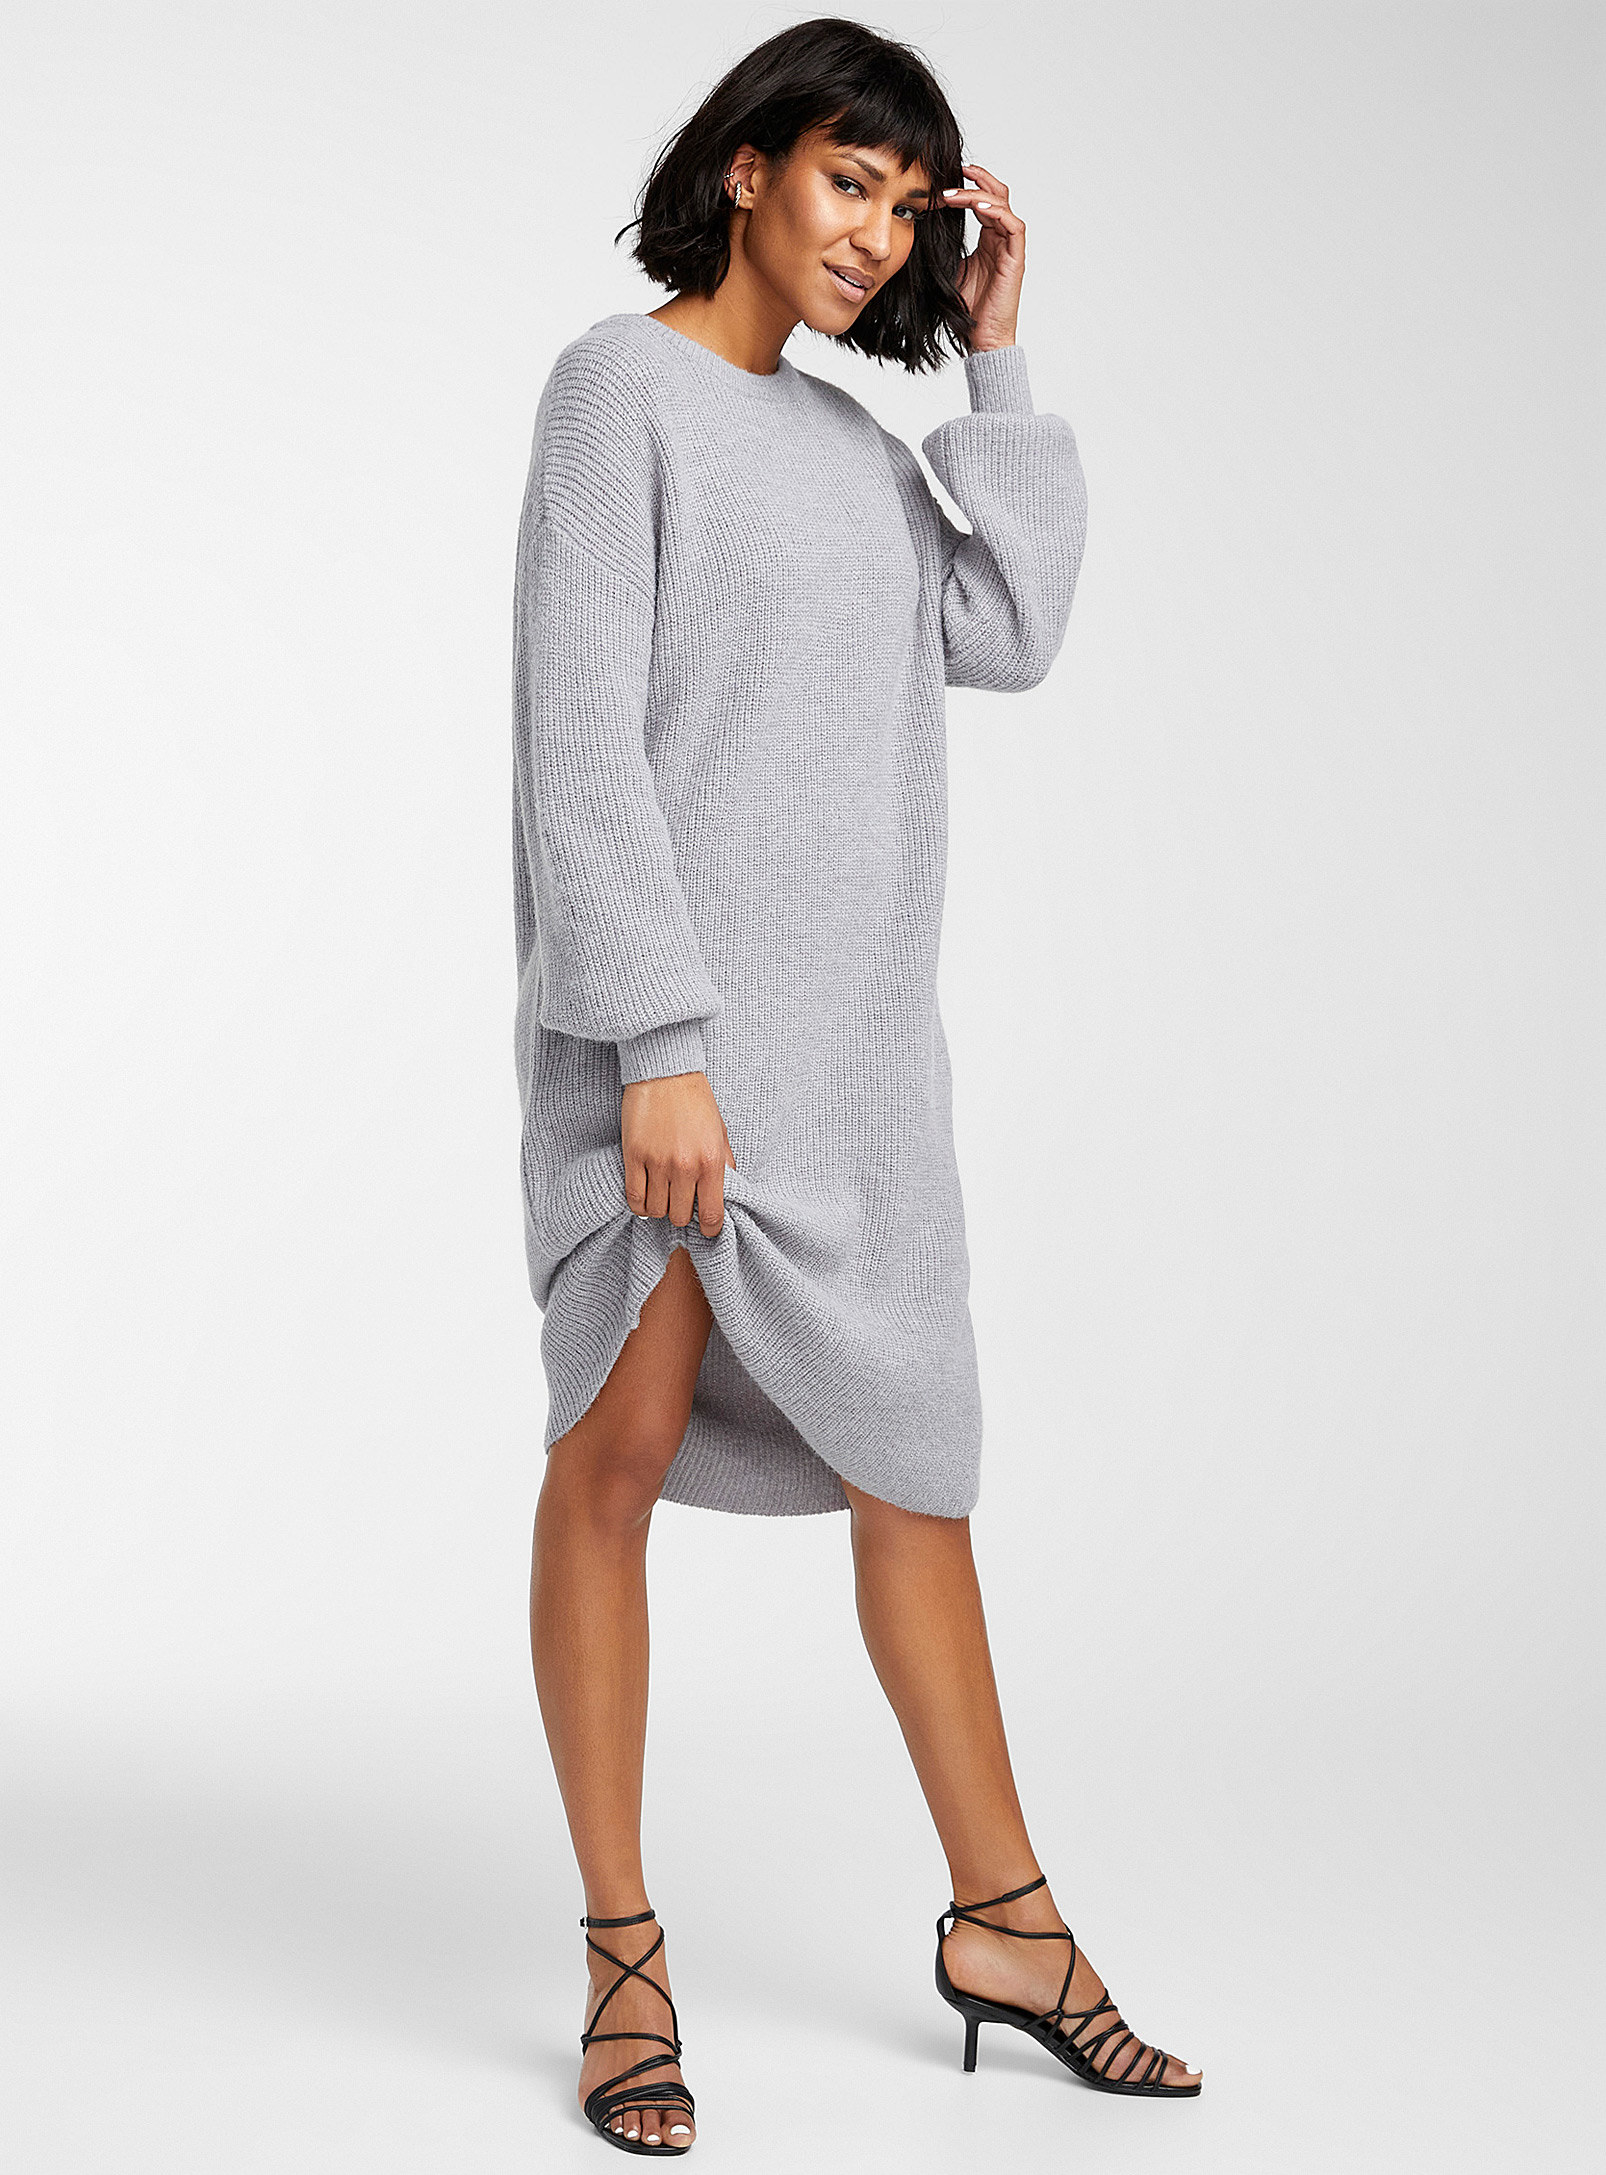 A person wearing a long-sleeved knit dress with heels